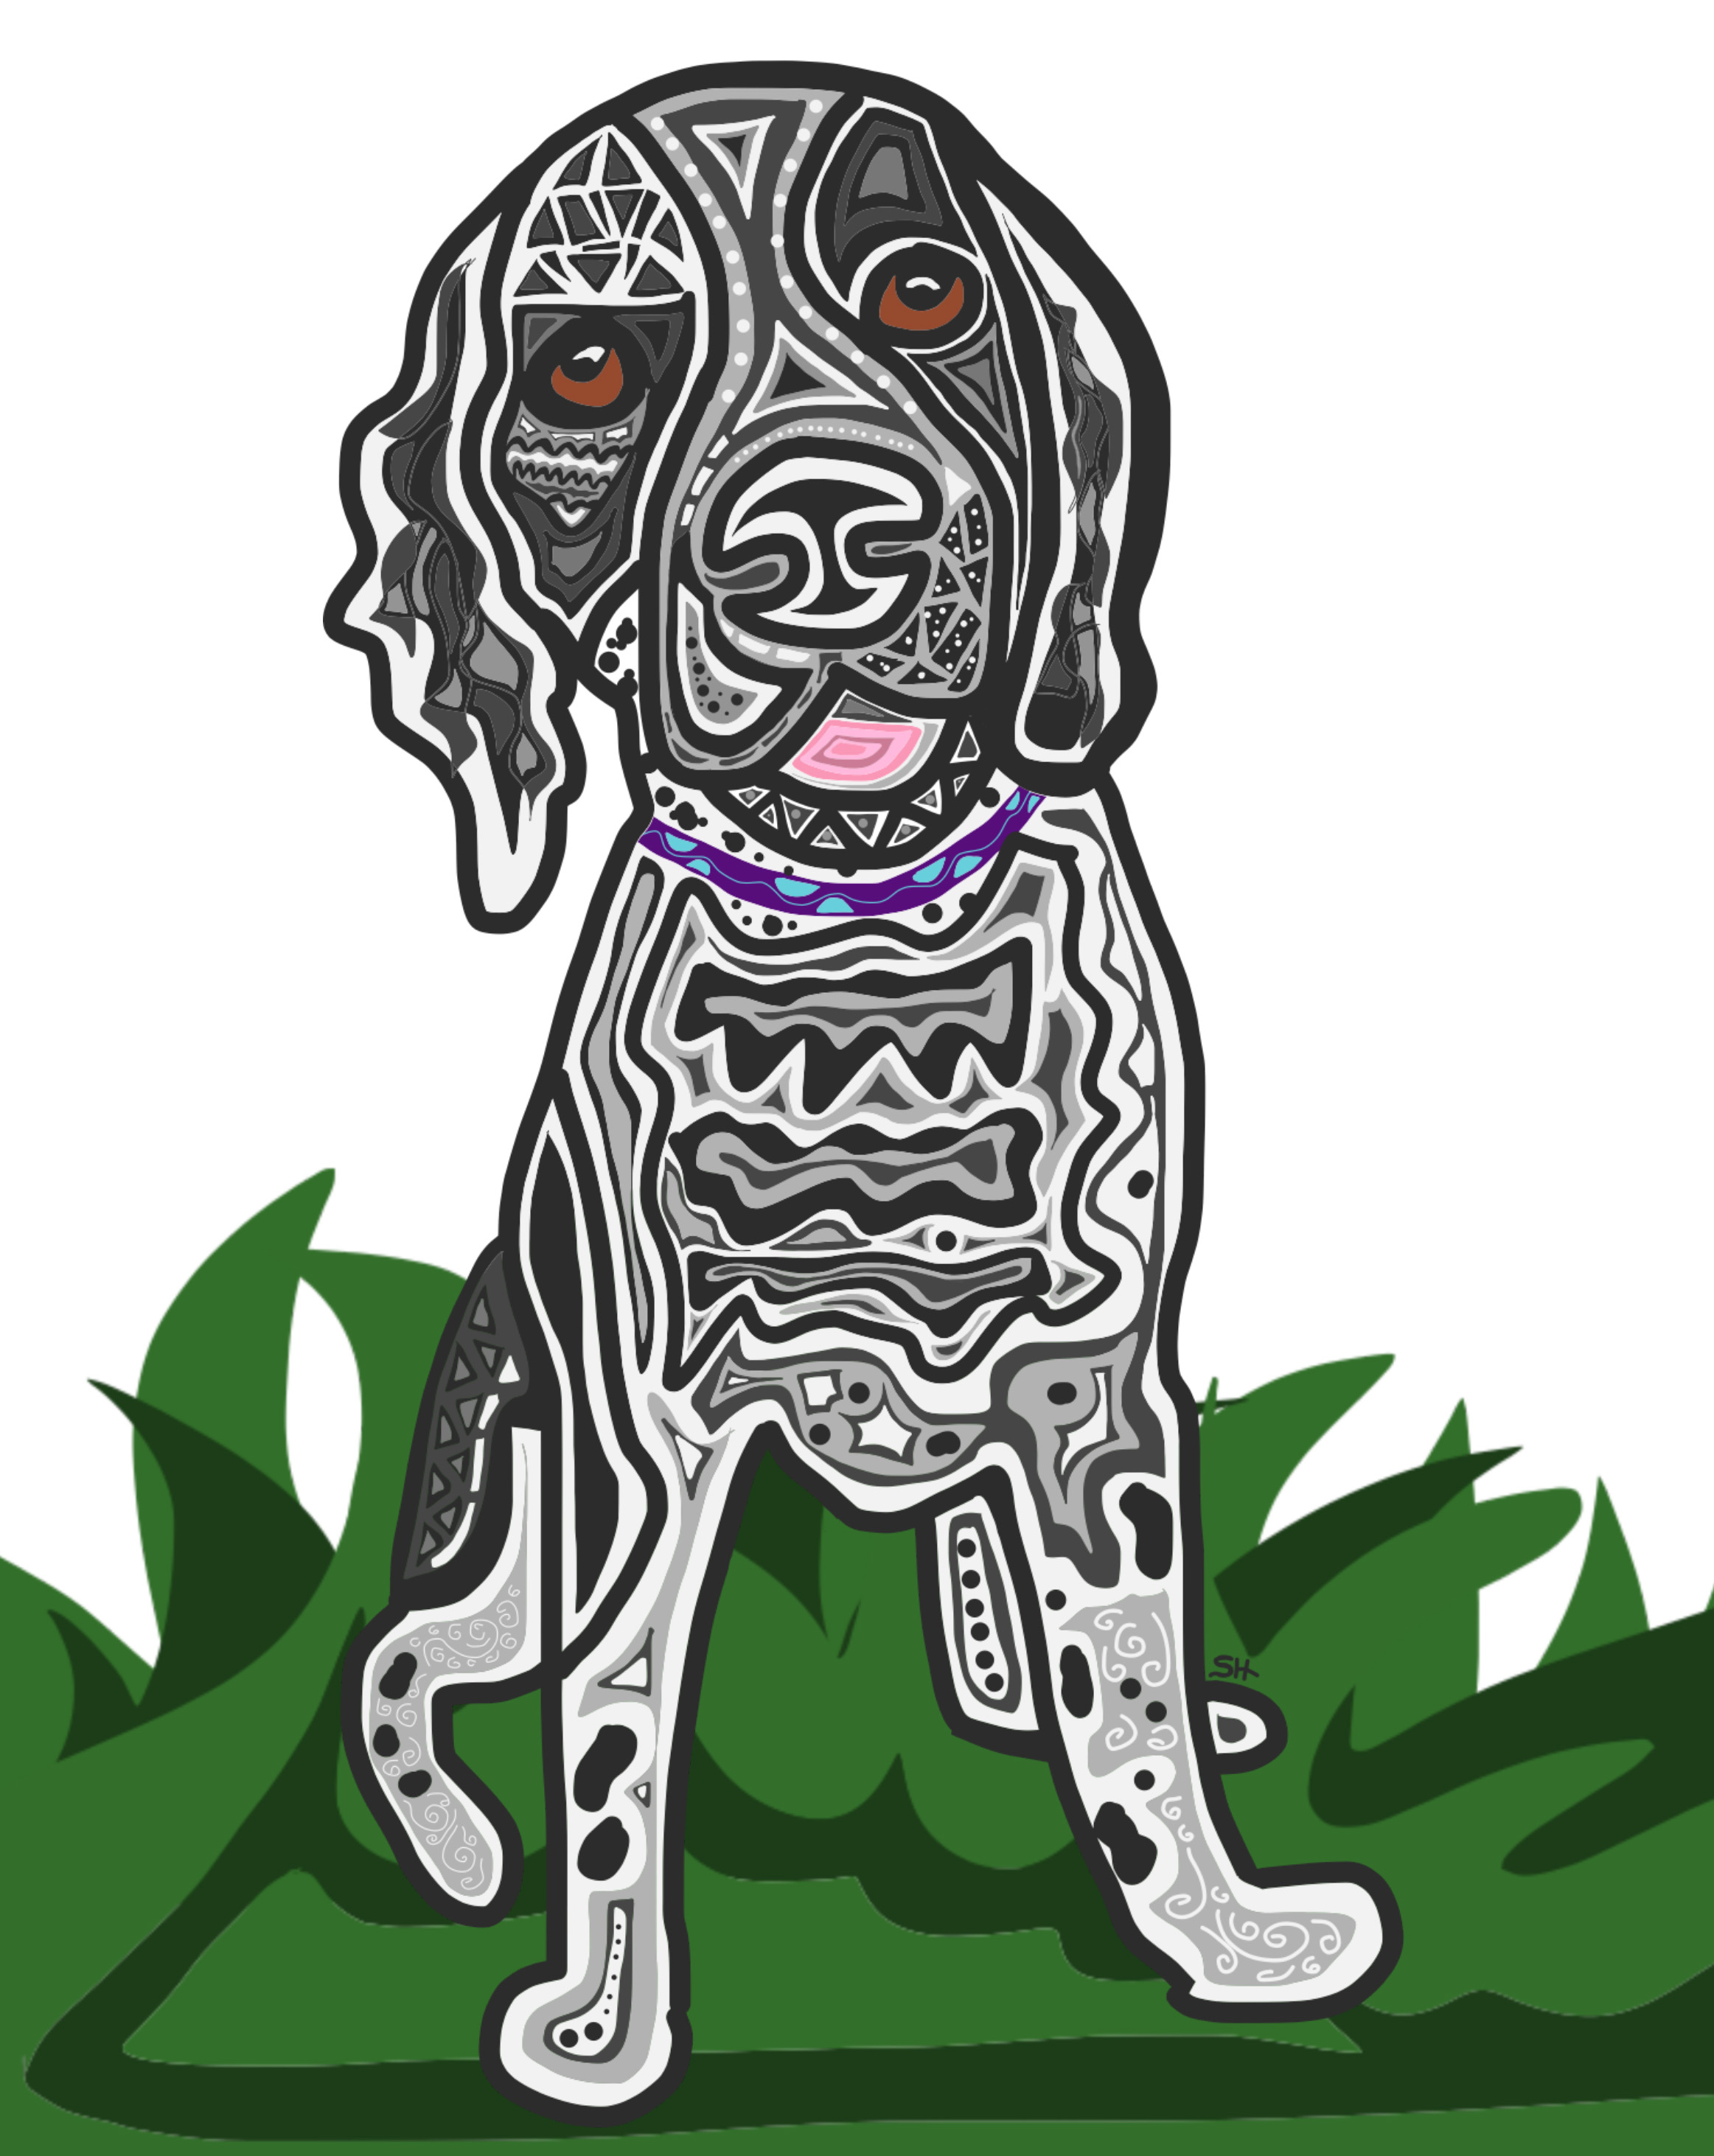 springer spaniel chloe 8x10 with grass